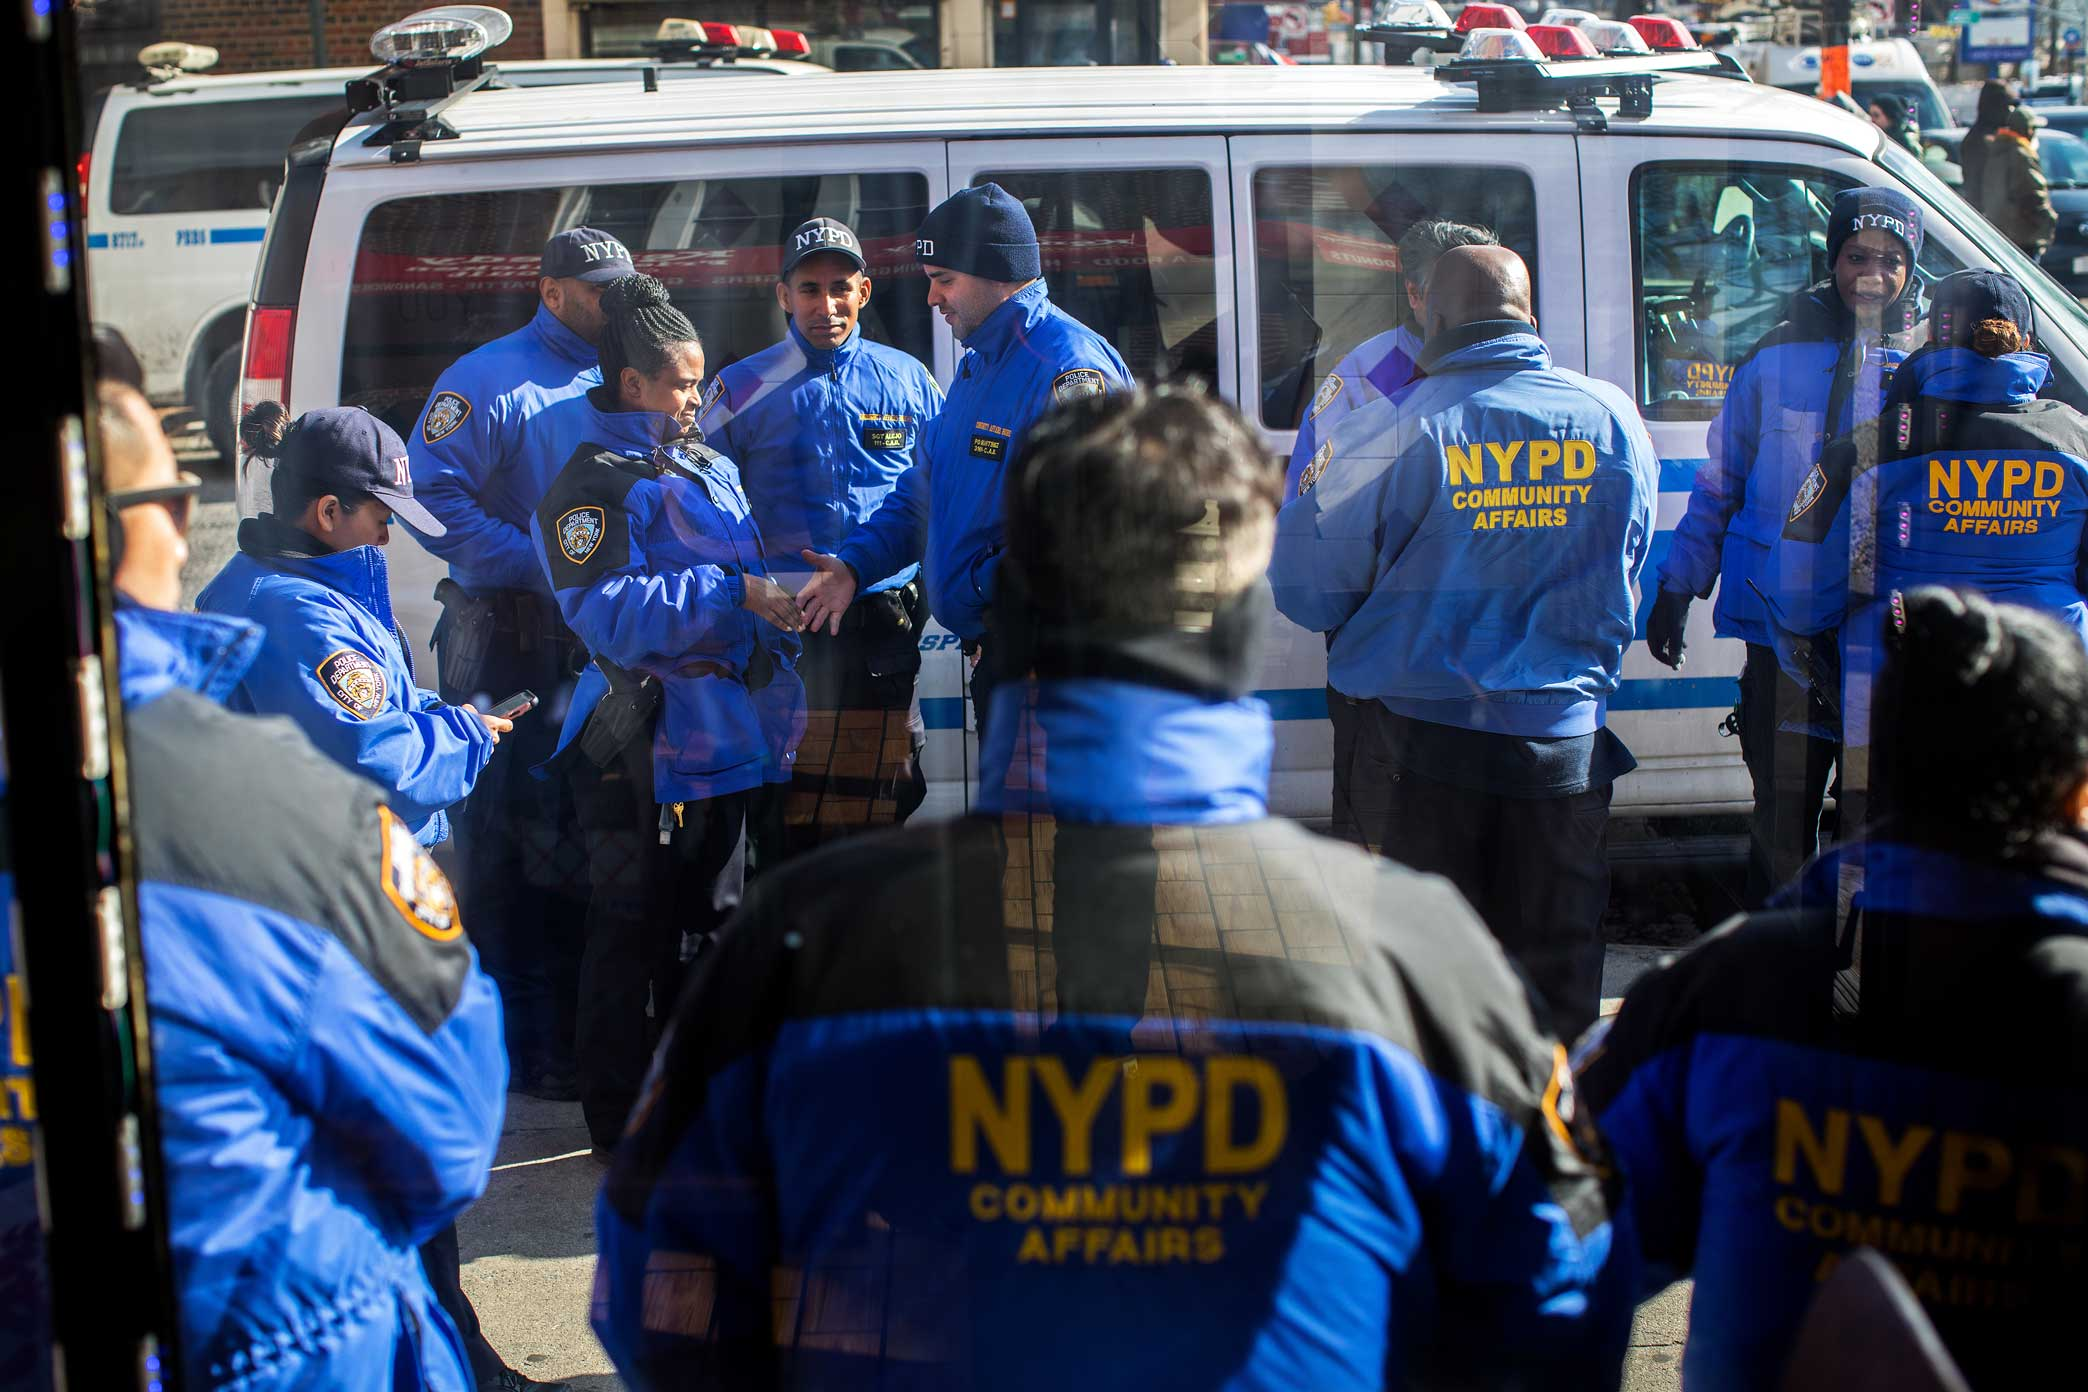 NYPD Community Affairs Officers gather for crowd control during the protest and Candle light vigil for Saheed Vassell in Brooklyn.